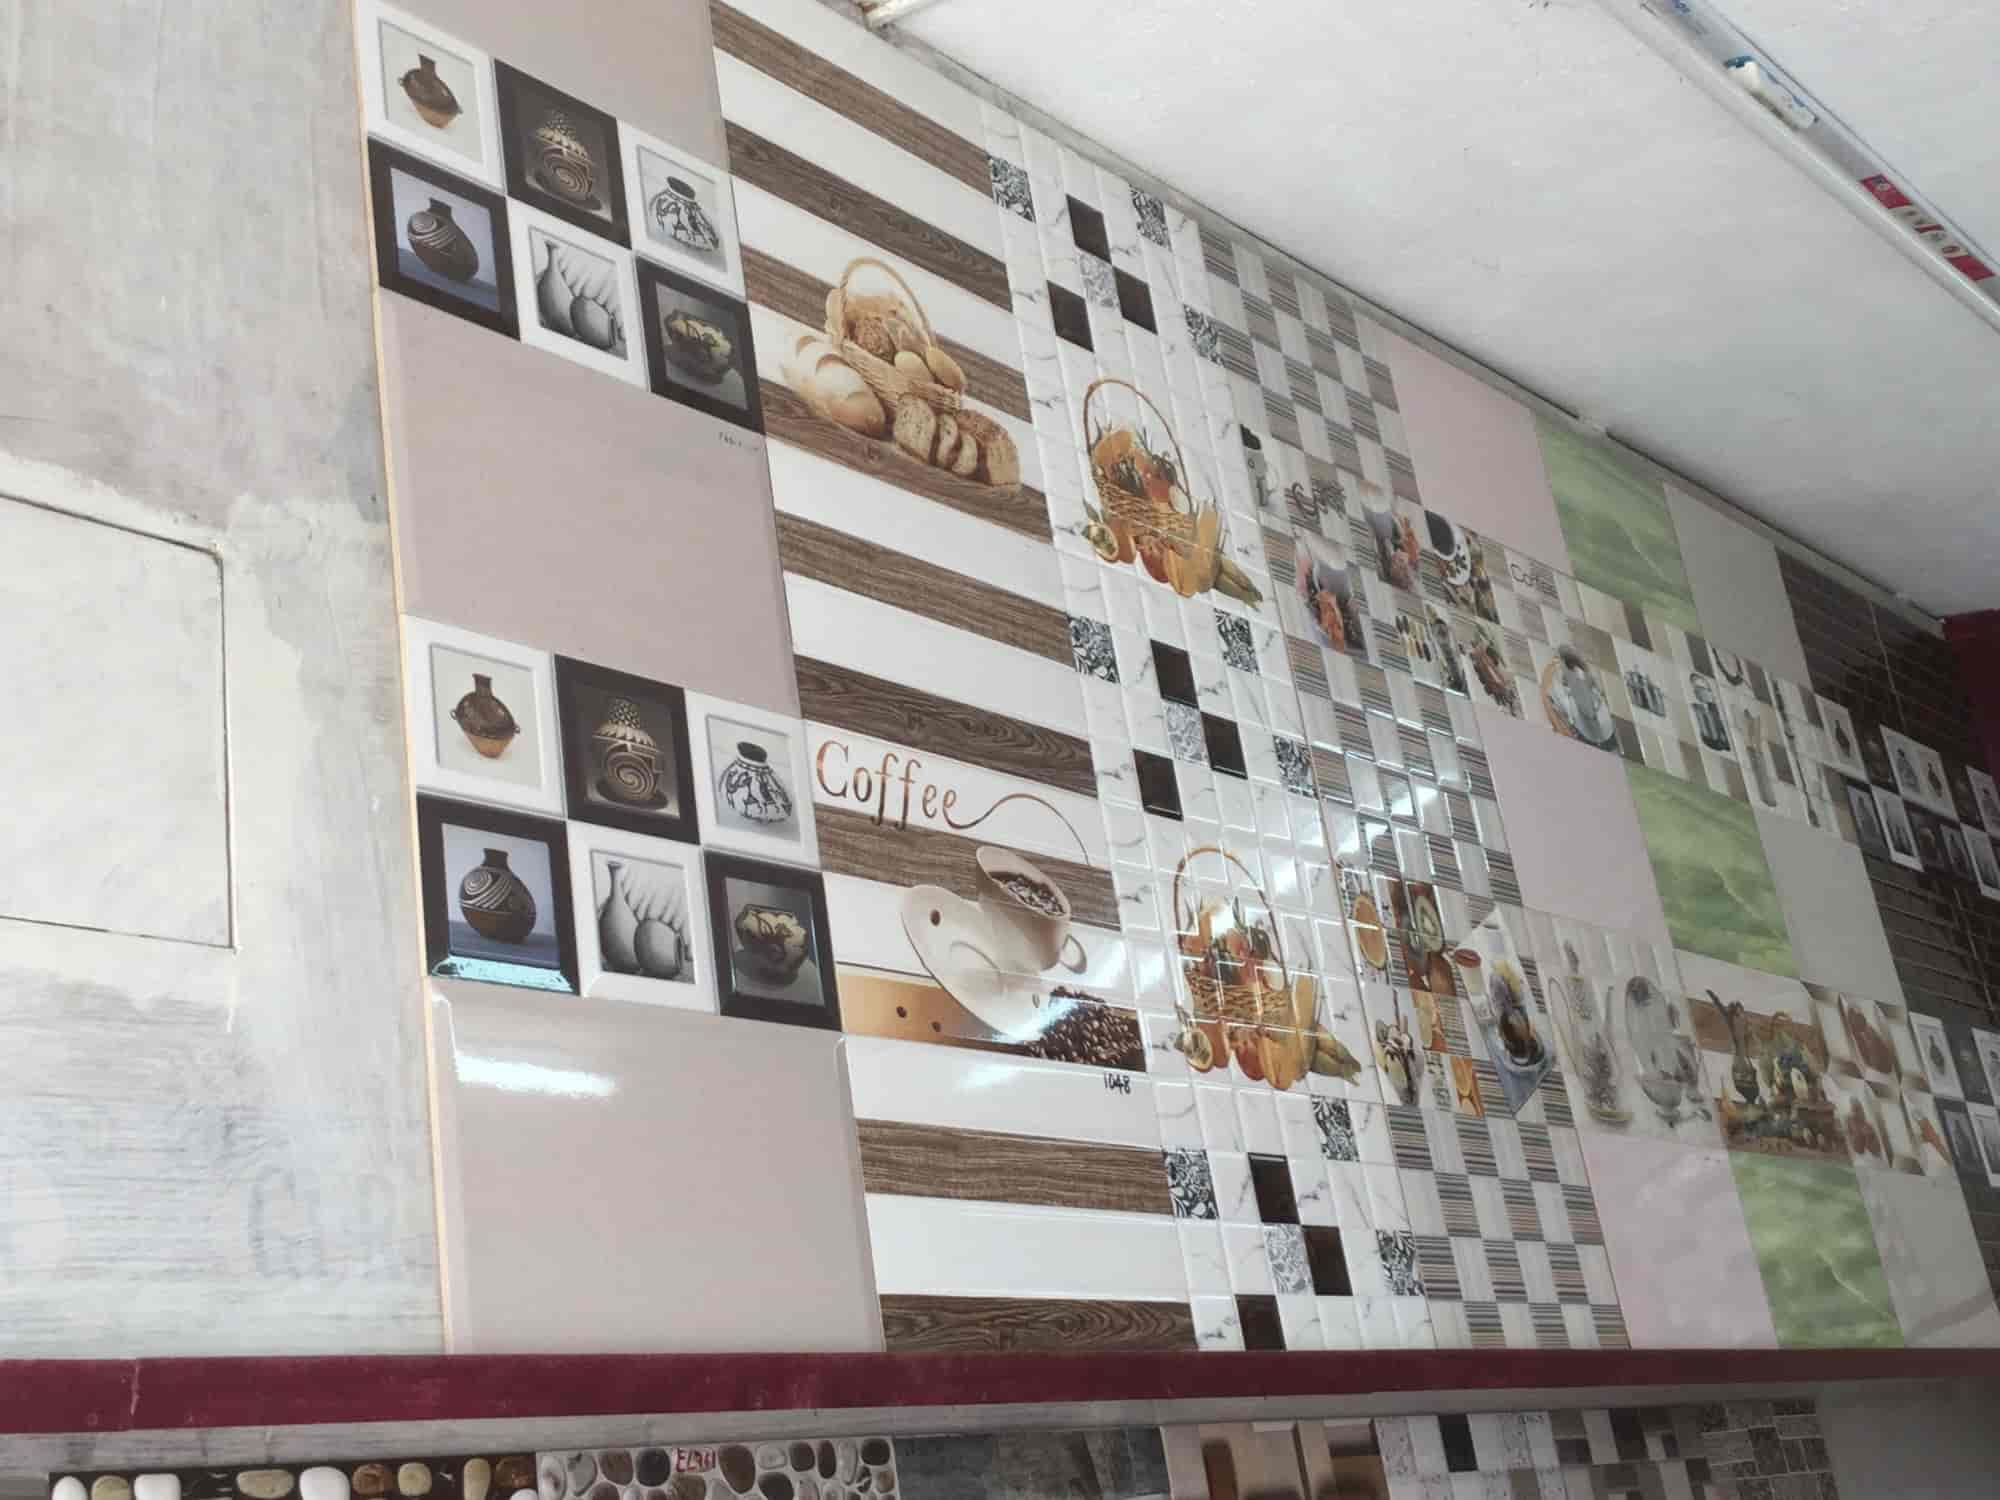 S R Ceramic Tiles Photos Anantapur Pictures Images Gallery - Ceramic tile dealers near me